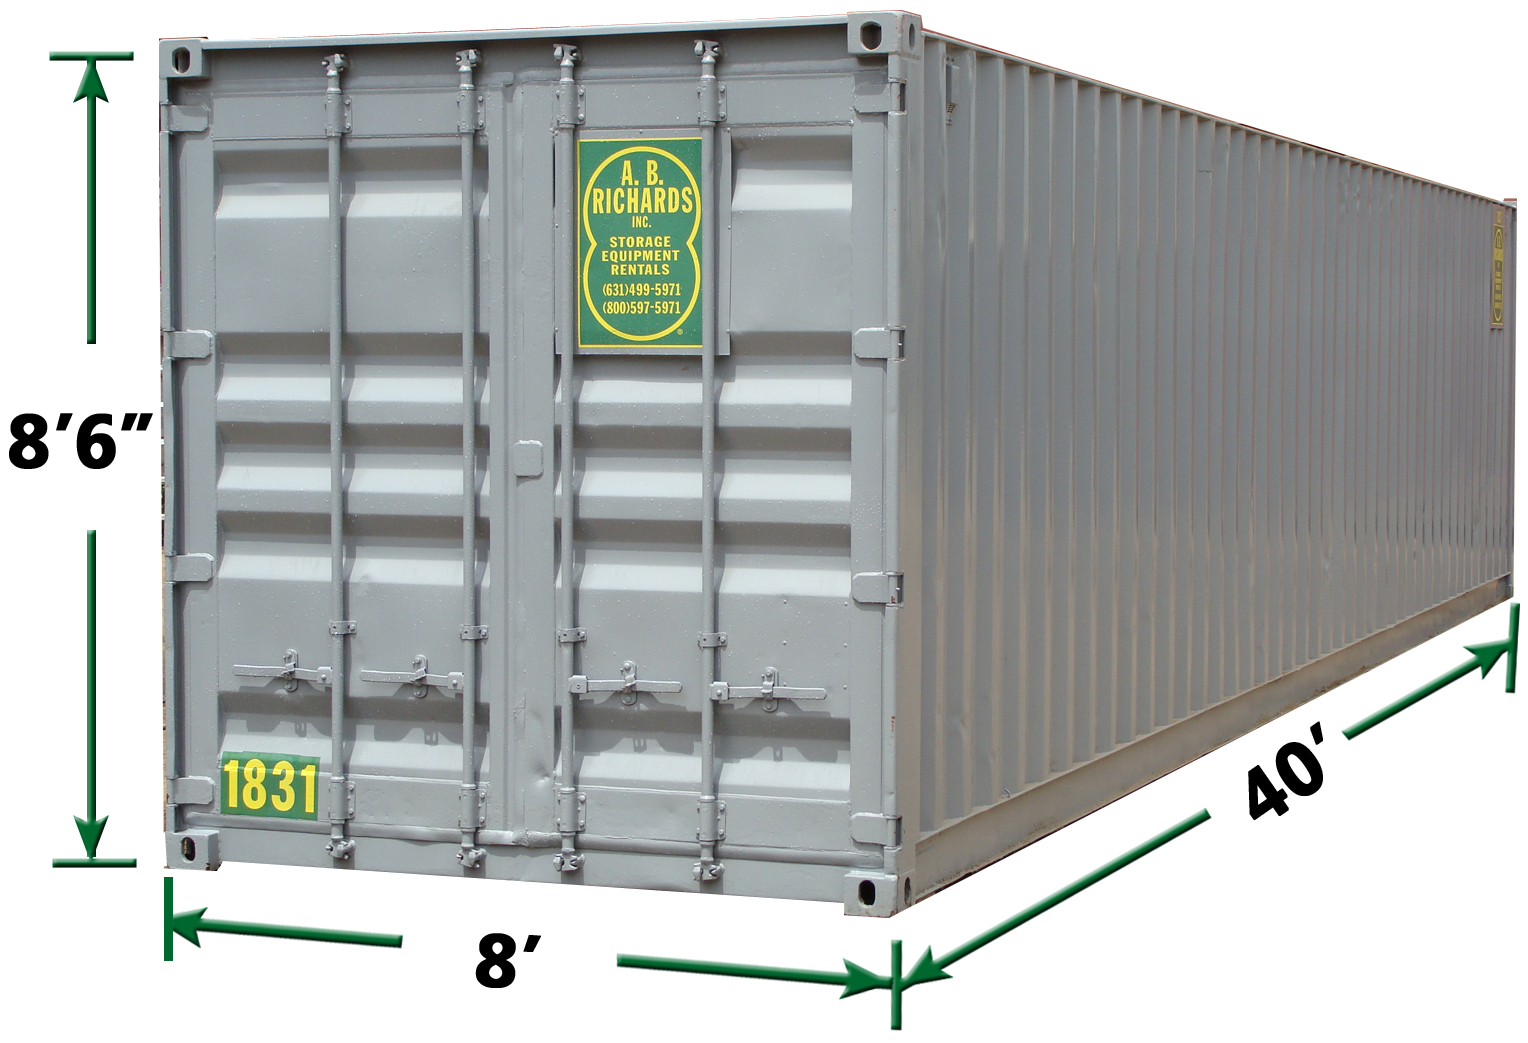 40-Foot Commercial Storage Containers by A.B. Richards